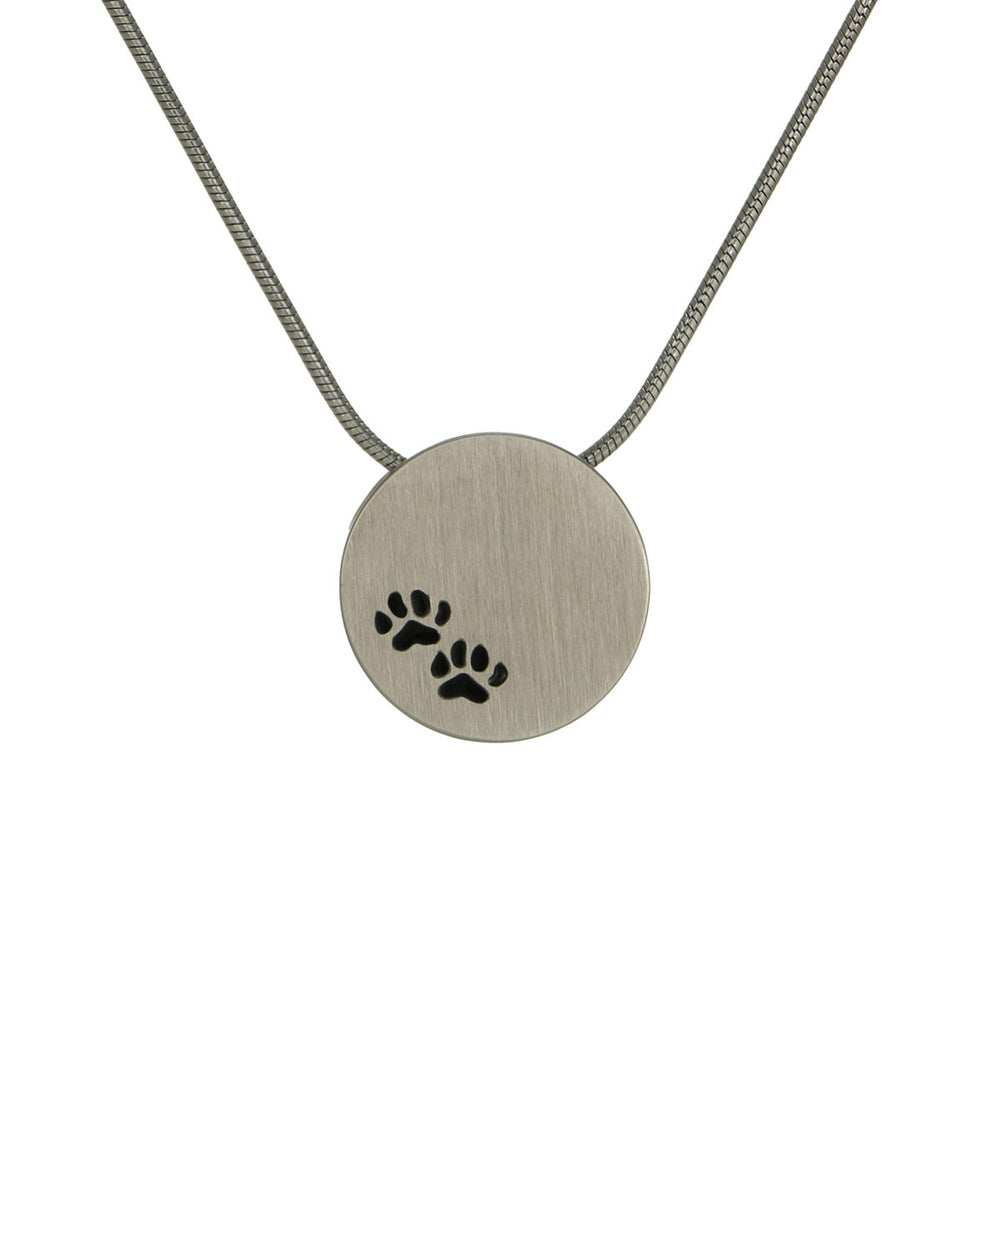 Disk Pendants - Pewter - Paw Prints